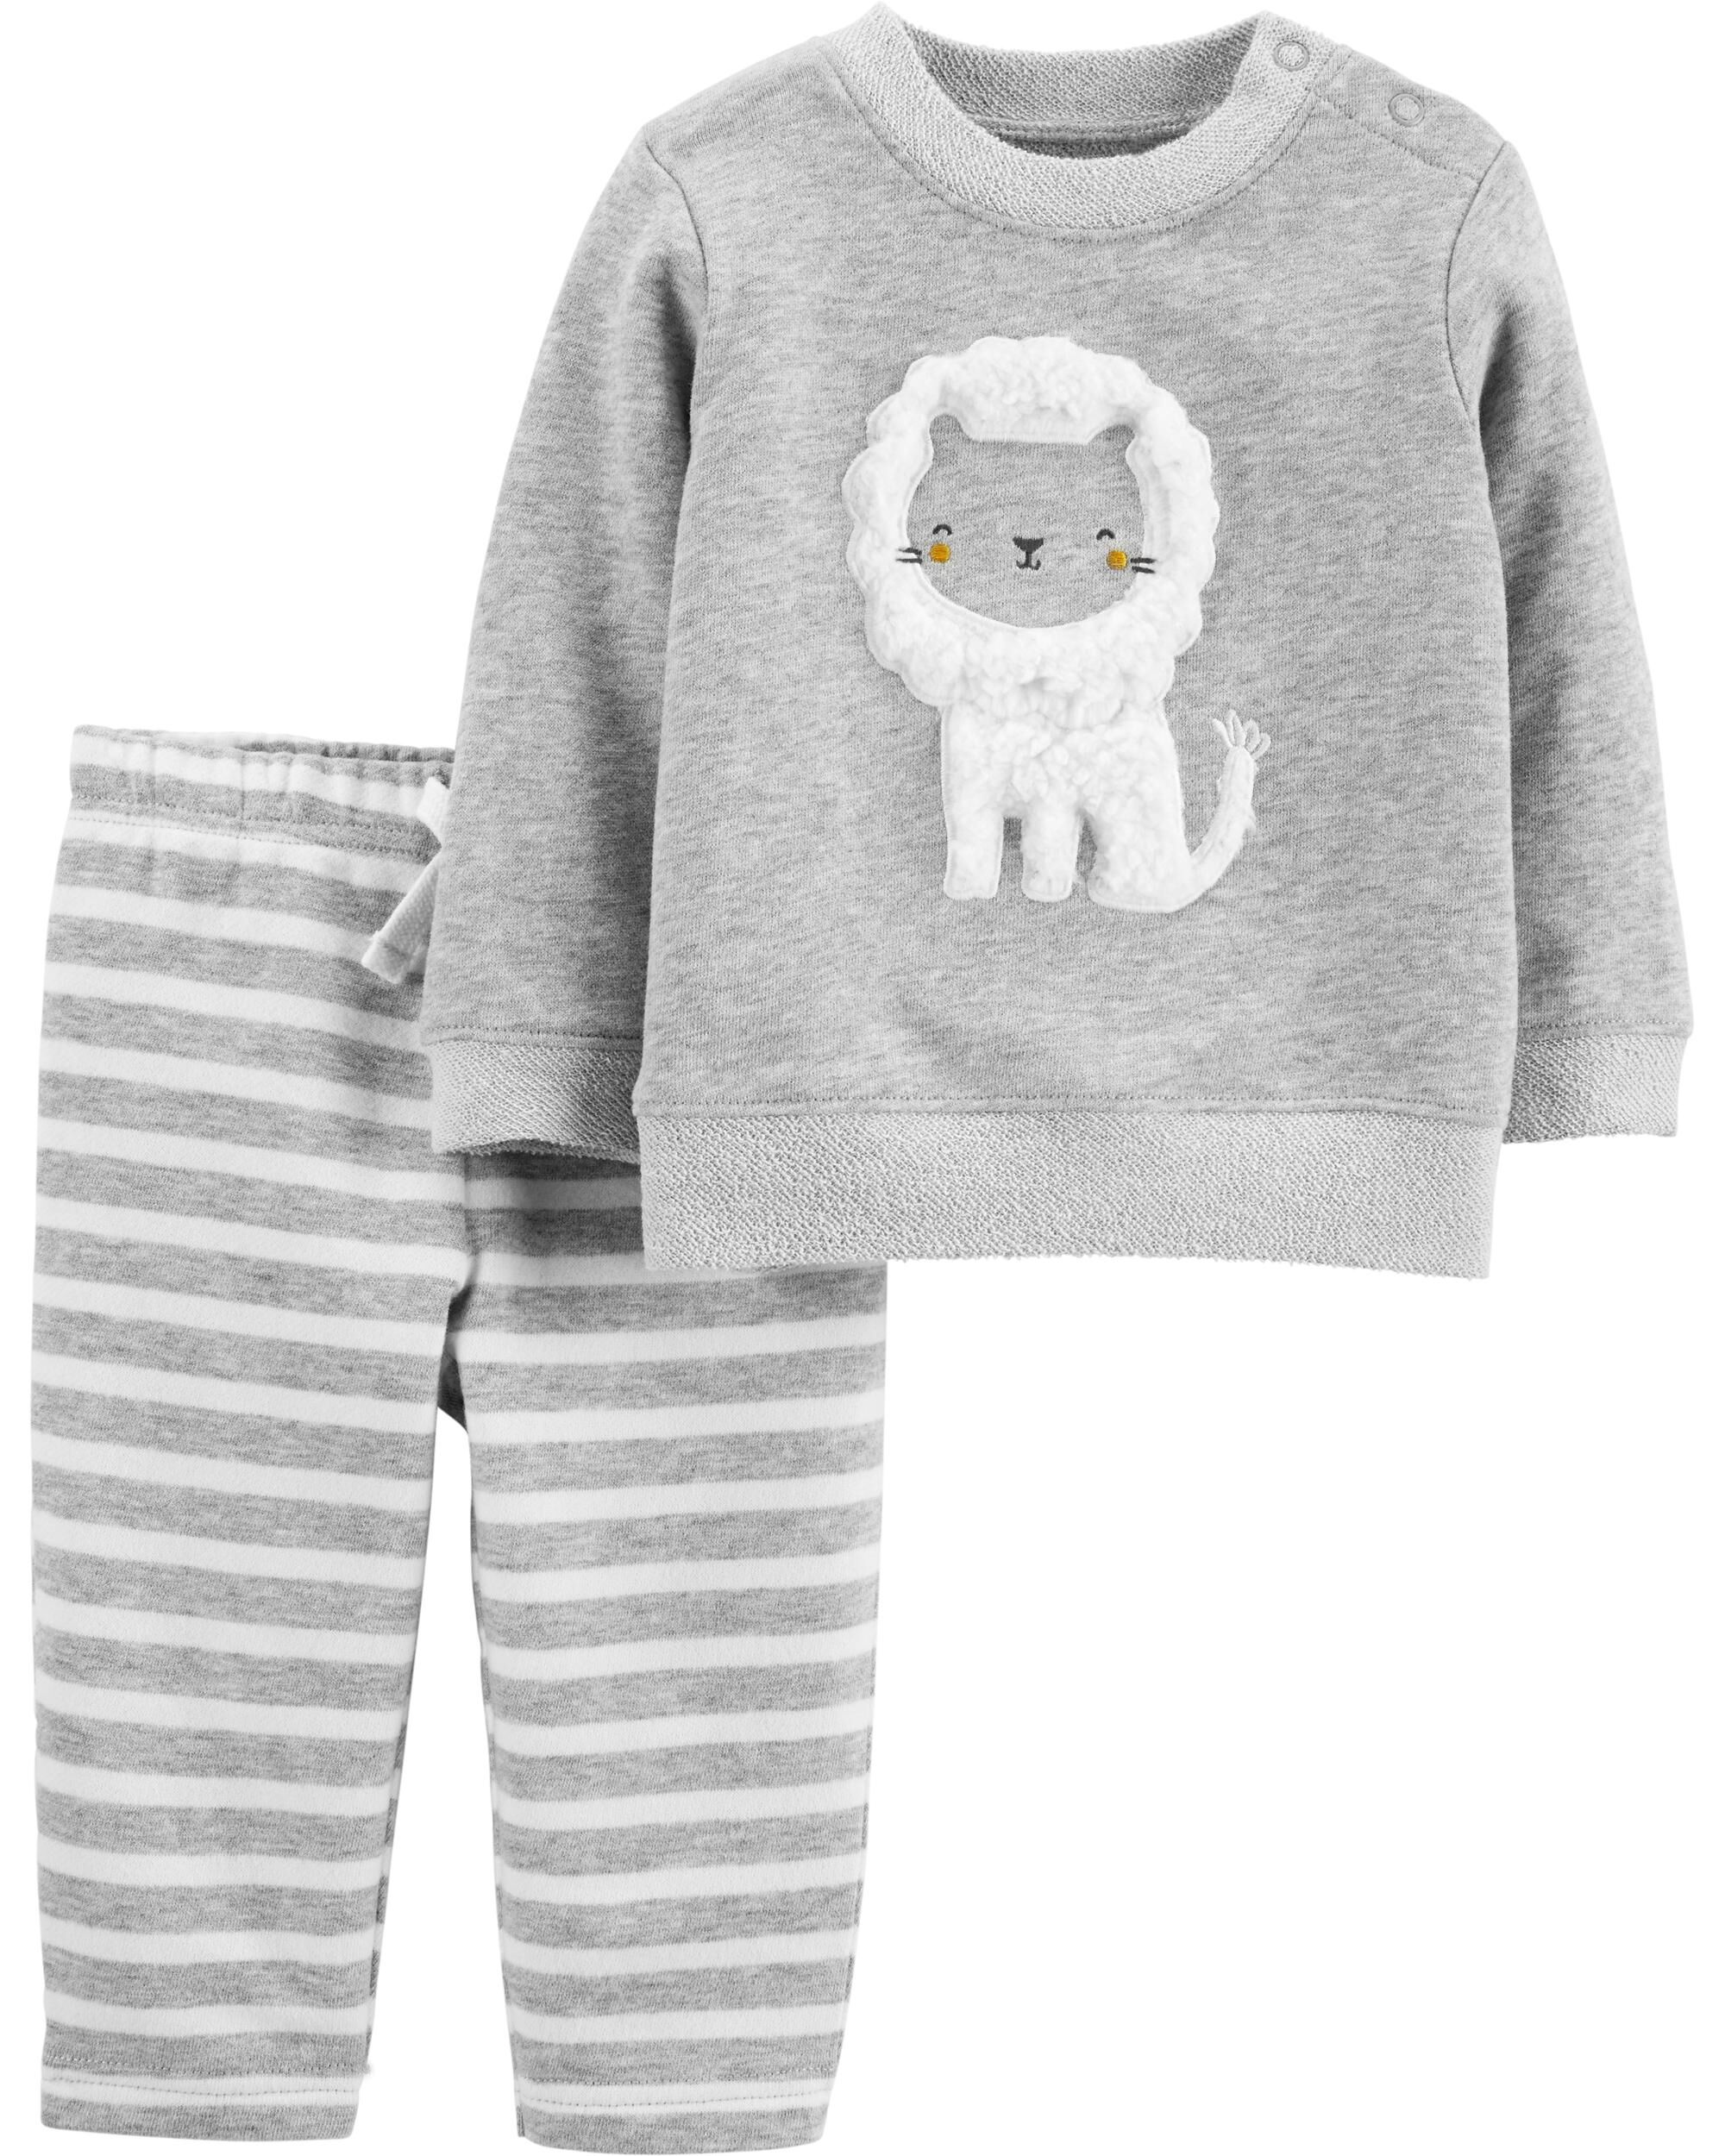 2-Piece Lion French Terry Top & Striped Pant Set